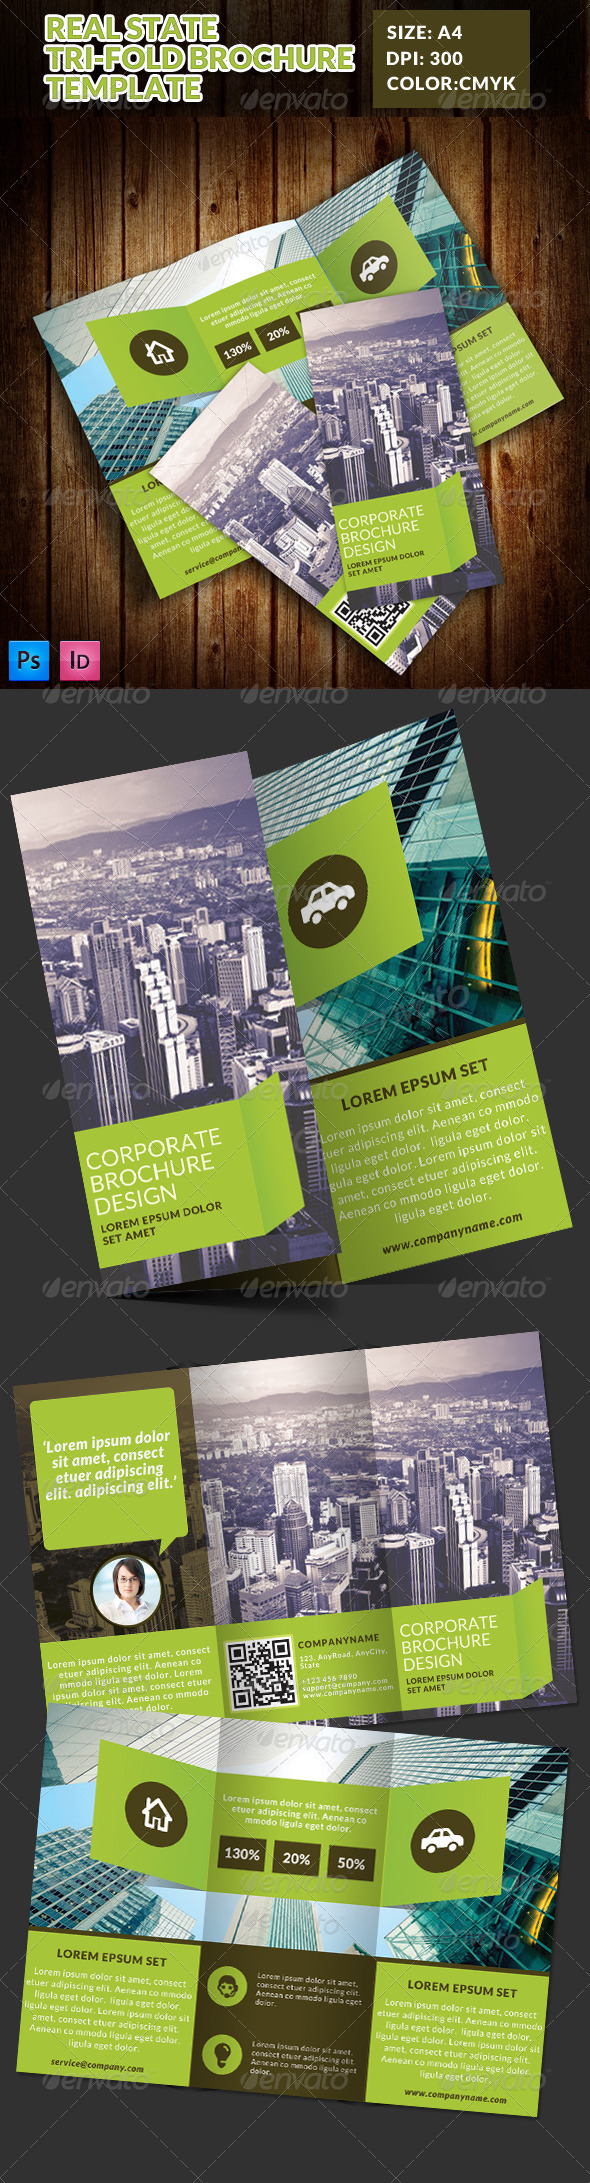 GraphicRiver Real State Tri-fold Brochure Template 1 7775963